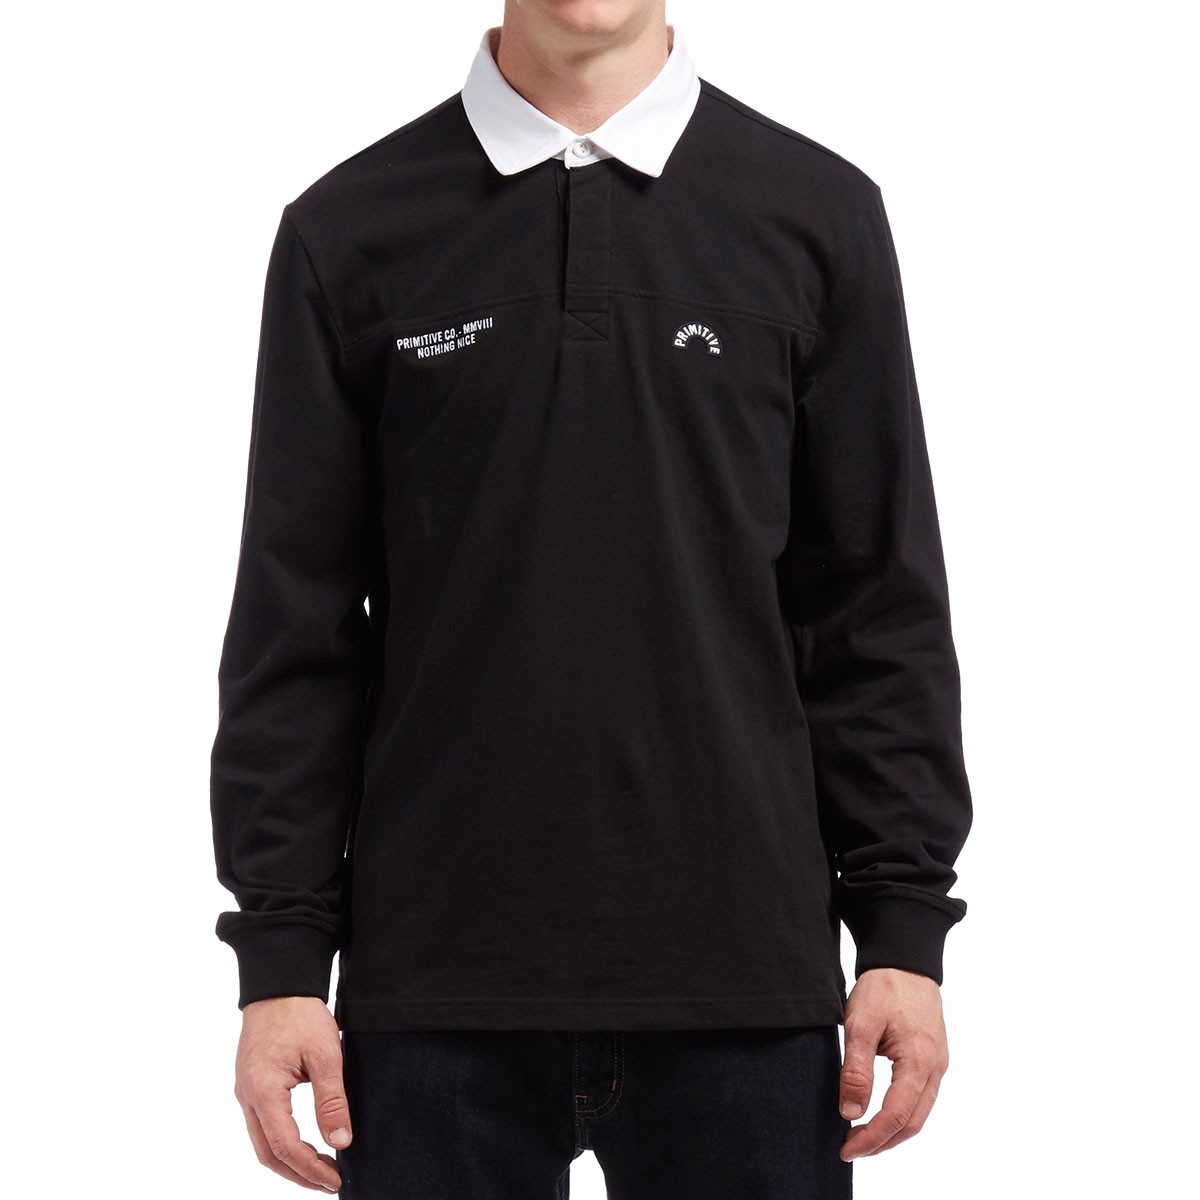 Primitive Nothing Nice Rugby Jersey - Black